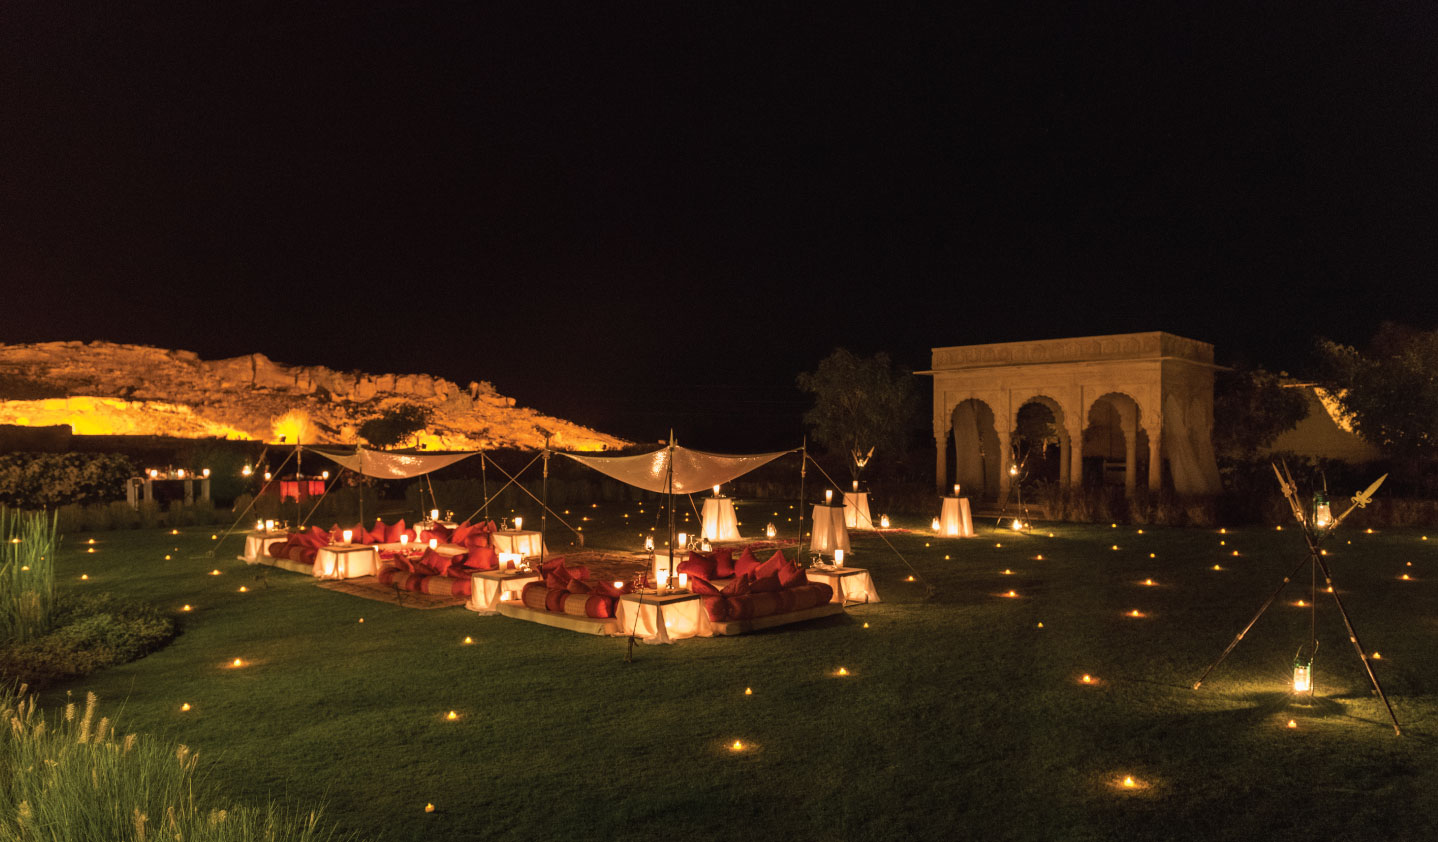 Thar Dinner at Celebration Gardens, Suryagarh, Jaisalmer